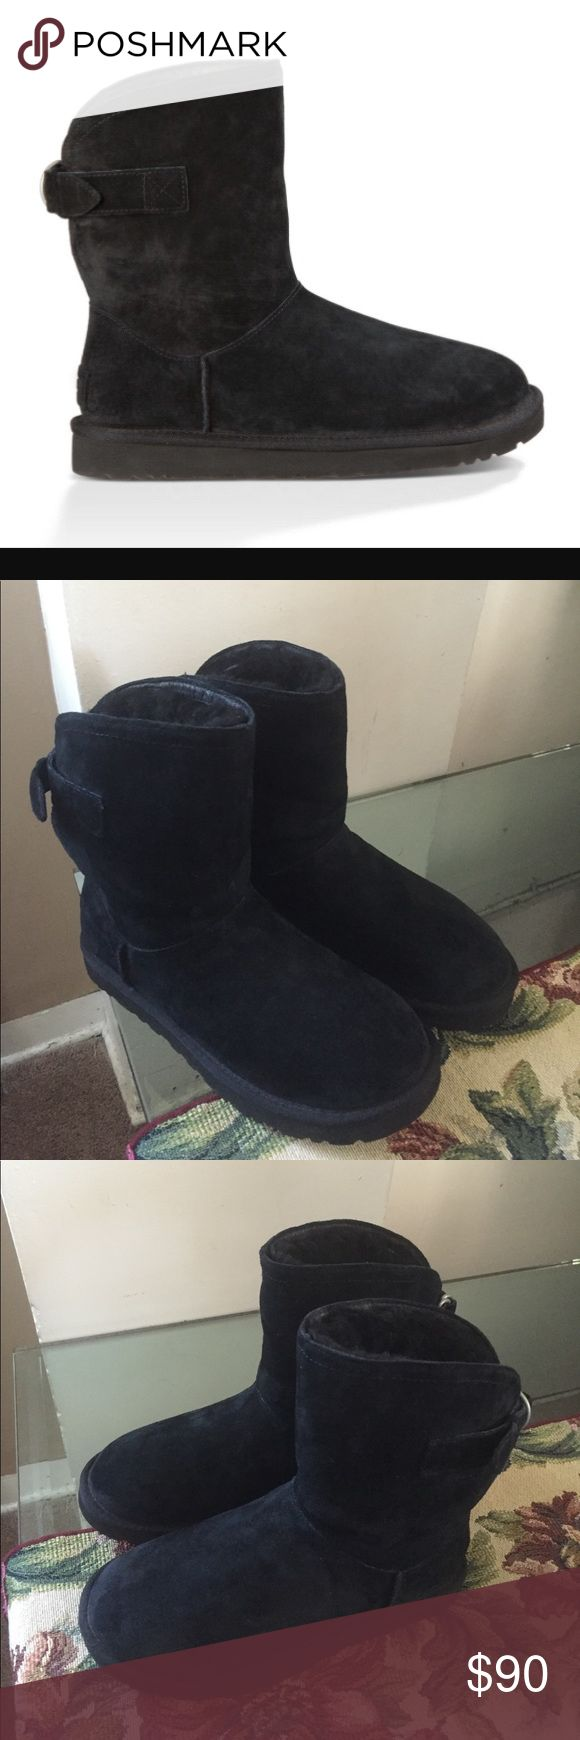 NEW UGG REMORA BLACK Ugg remora black. New no box. UGG Shoes Ankle Boots & Booties